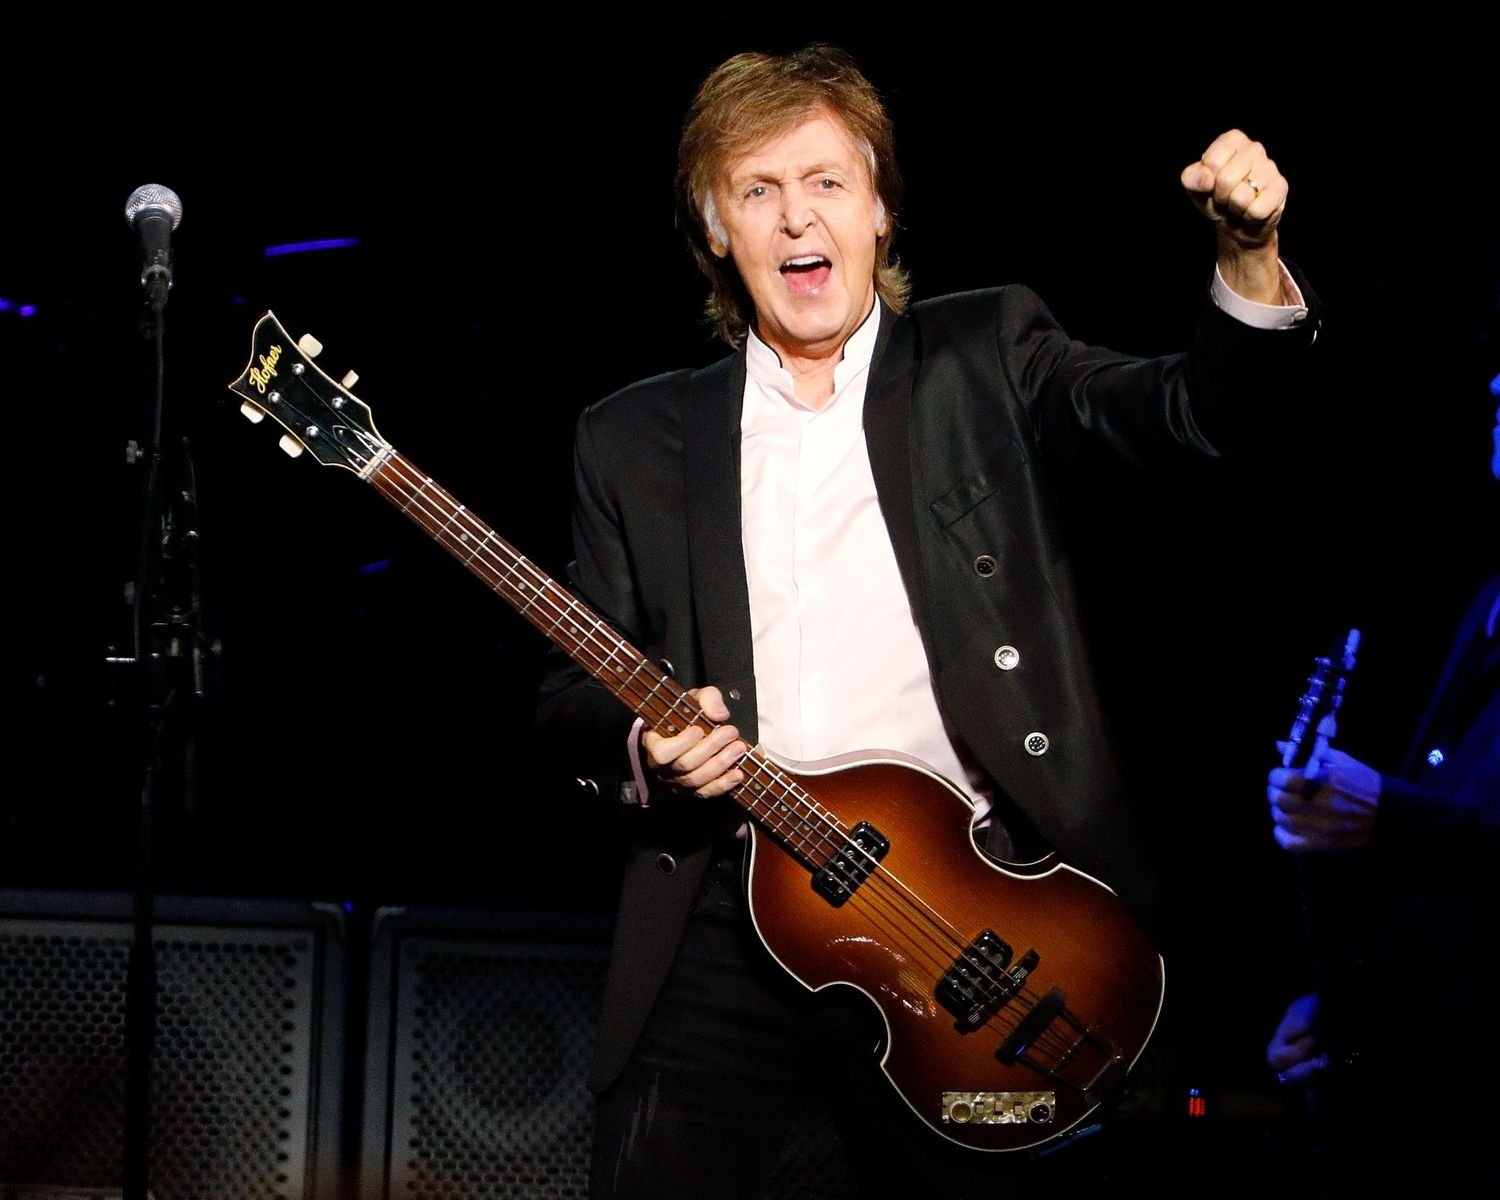 Sir Paul McCartney at Barclays Center on September 21, 2017   Photo: Getty Images